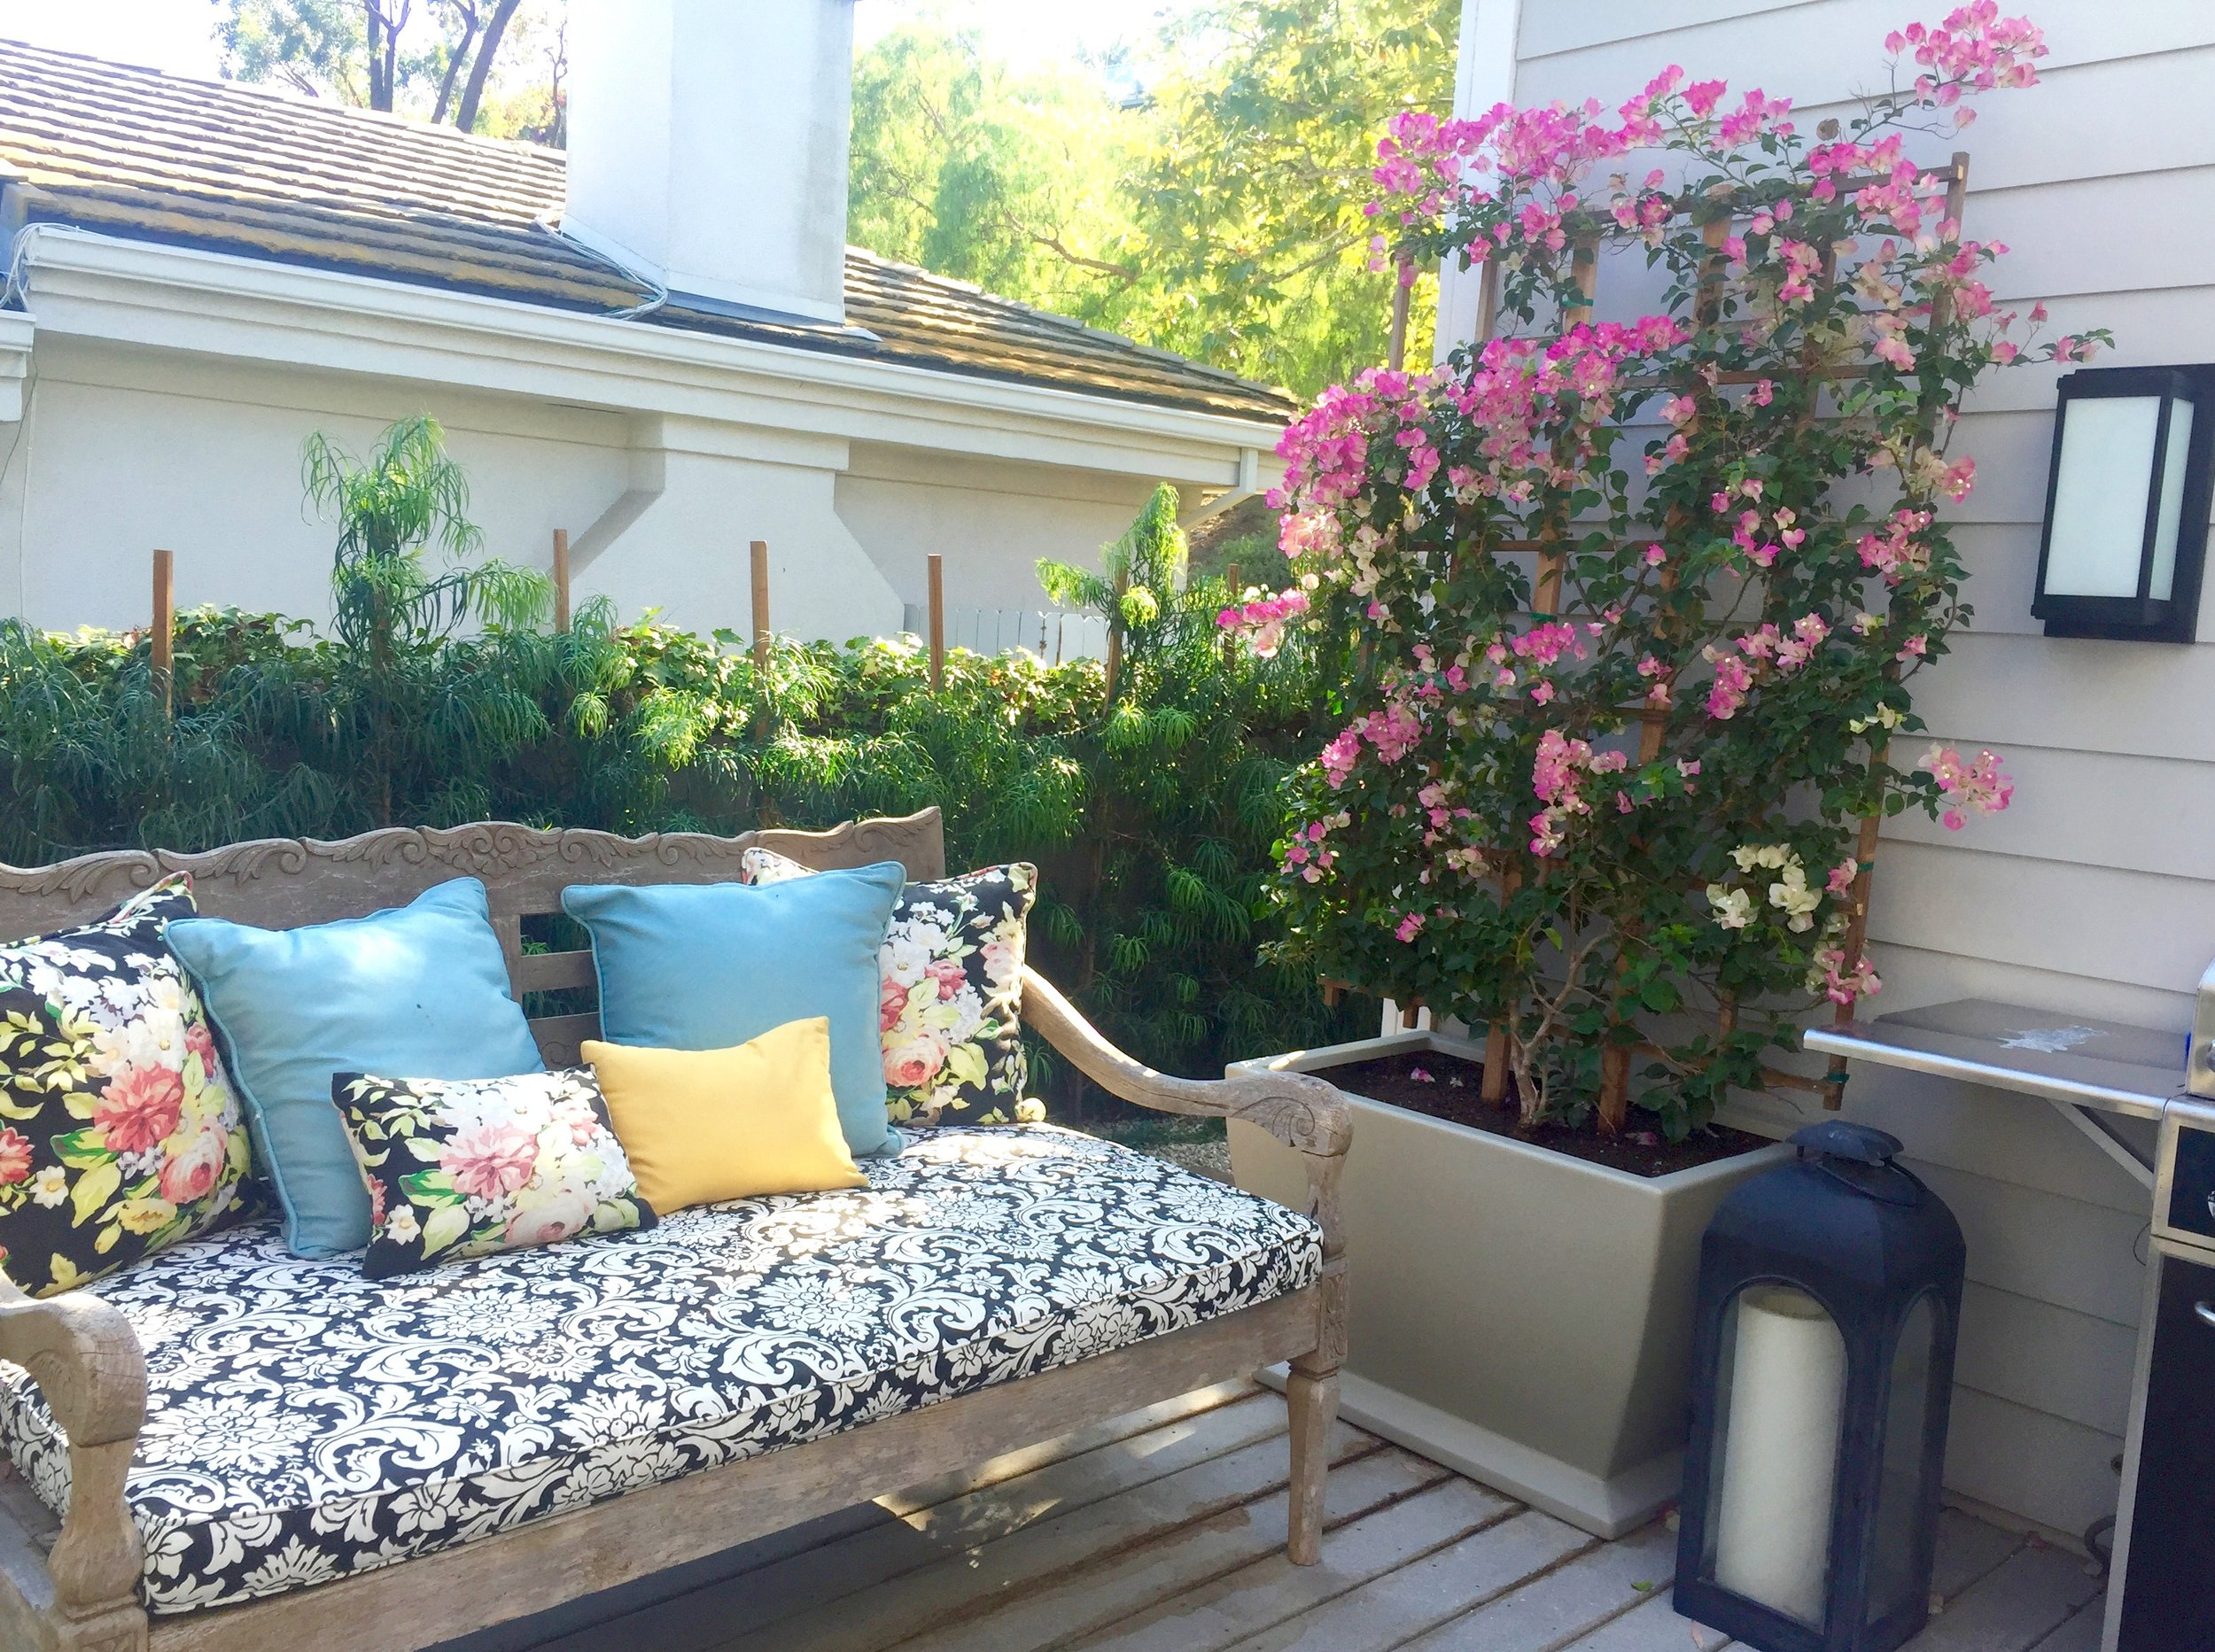 MARONEY - Originally a spec house bought for a growing family these clients wanted a colorful and child friendly landscape. By adding pottery, retaining walls, succulents and pops of color we made this bland space feel custom.